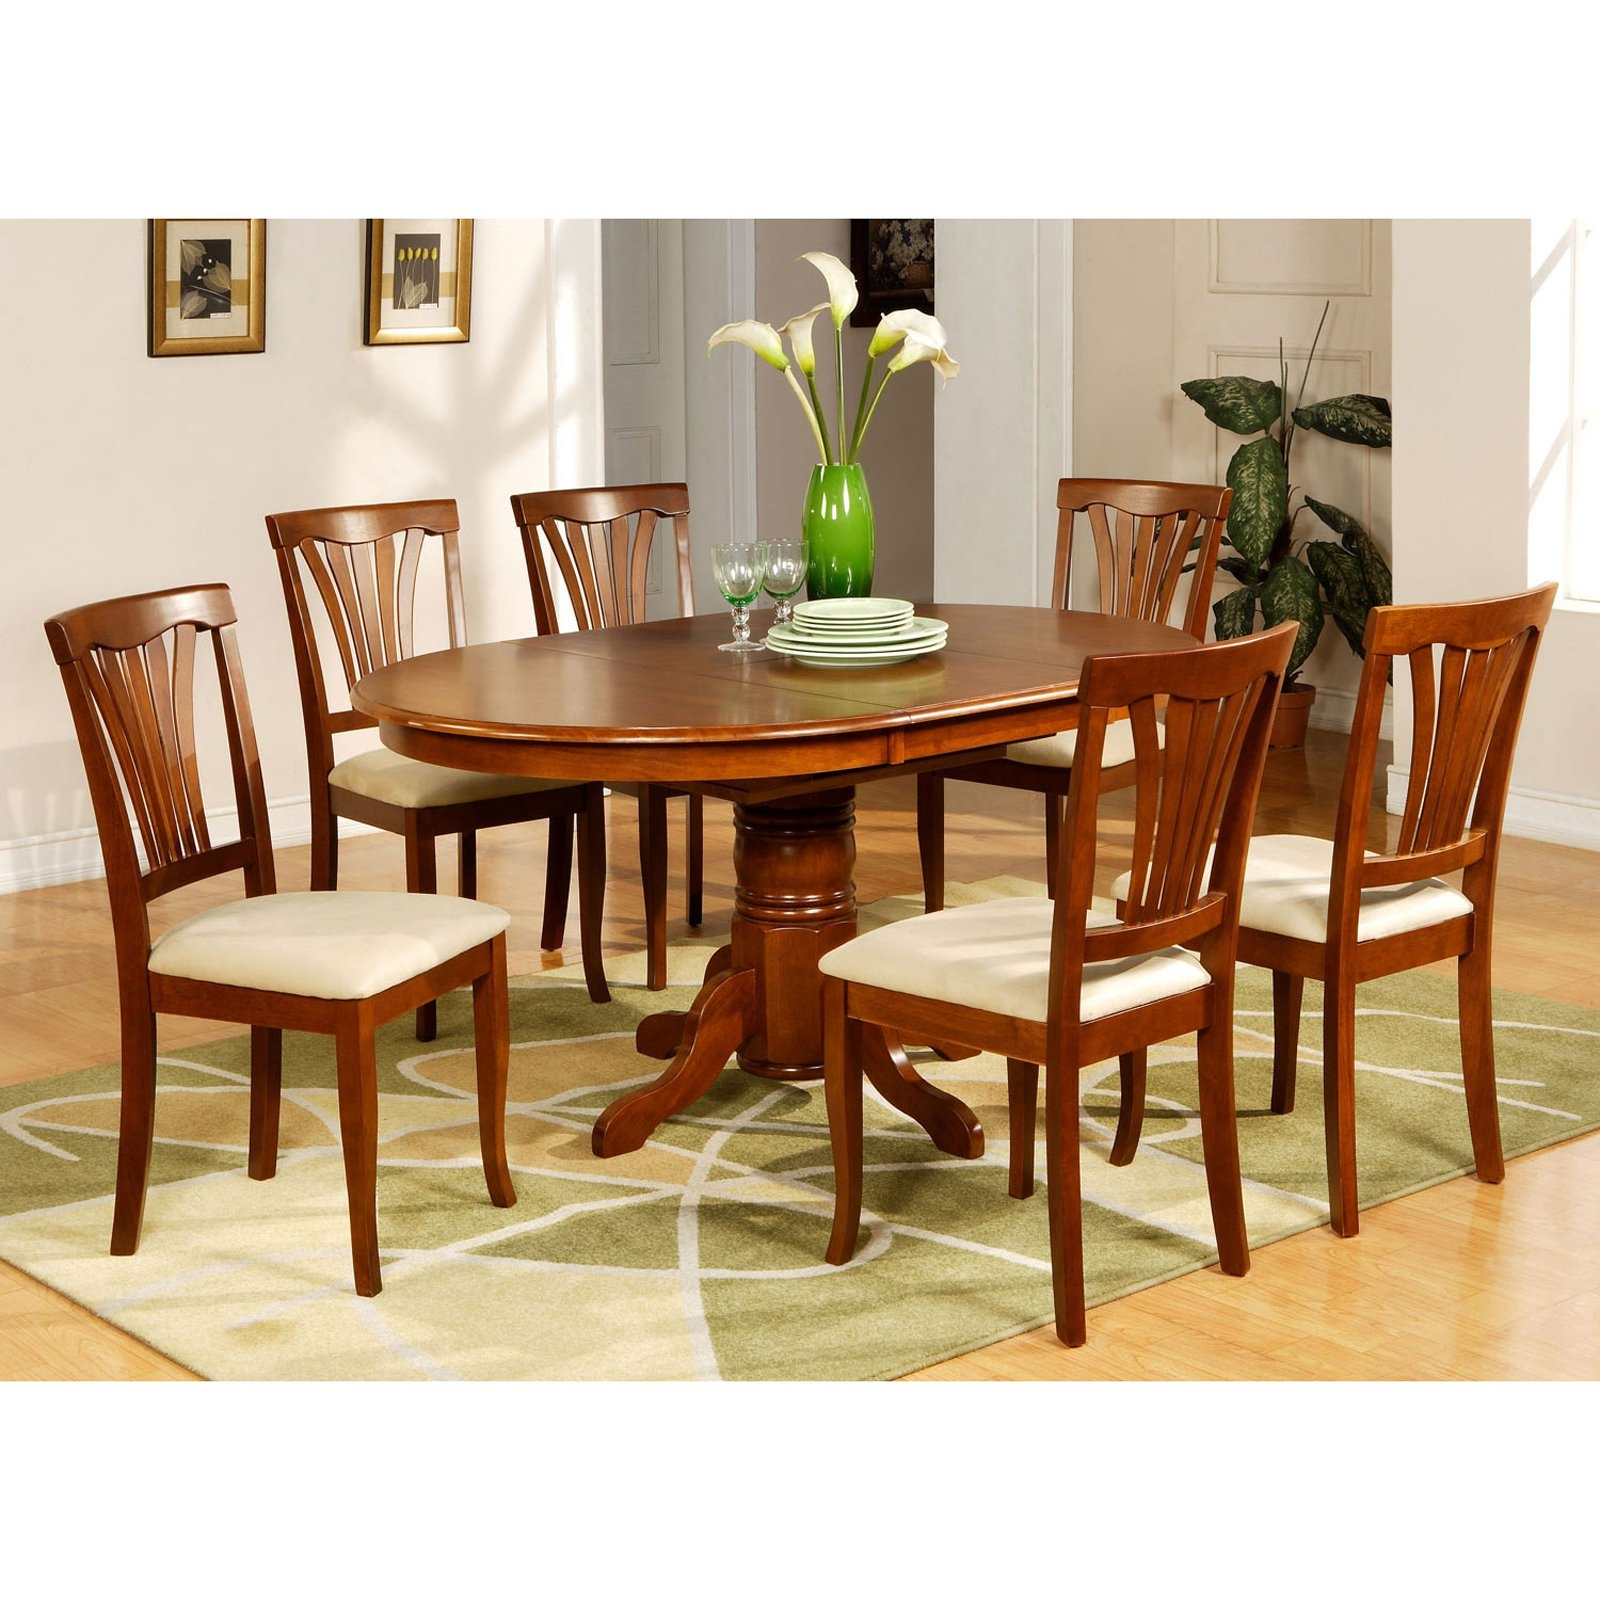 Delightful East West Furniture AVON7 SBR C 7PC Oval Dining Set With Single Pedestal  With